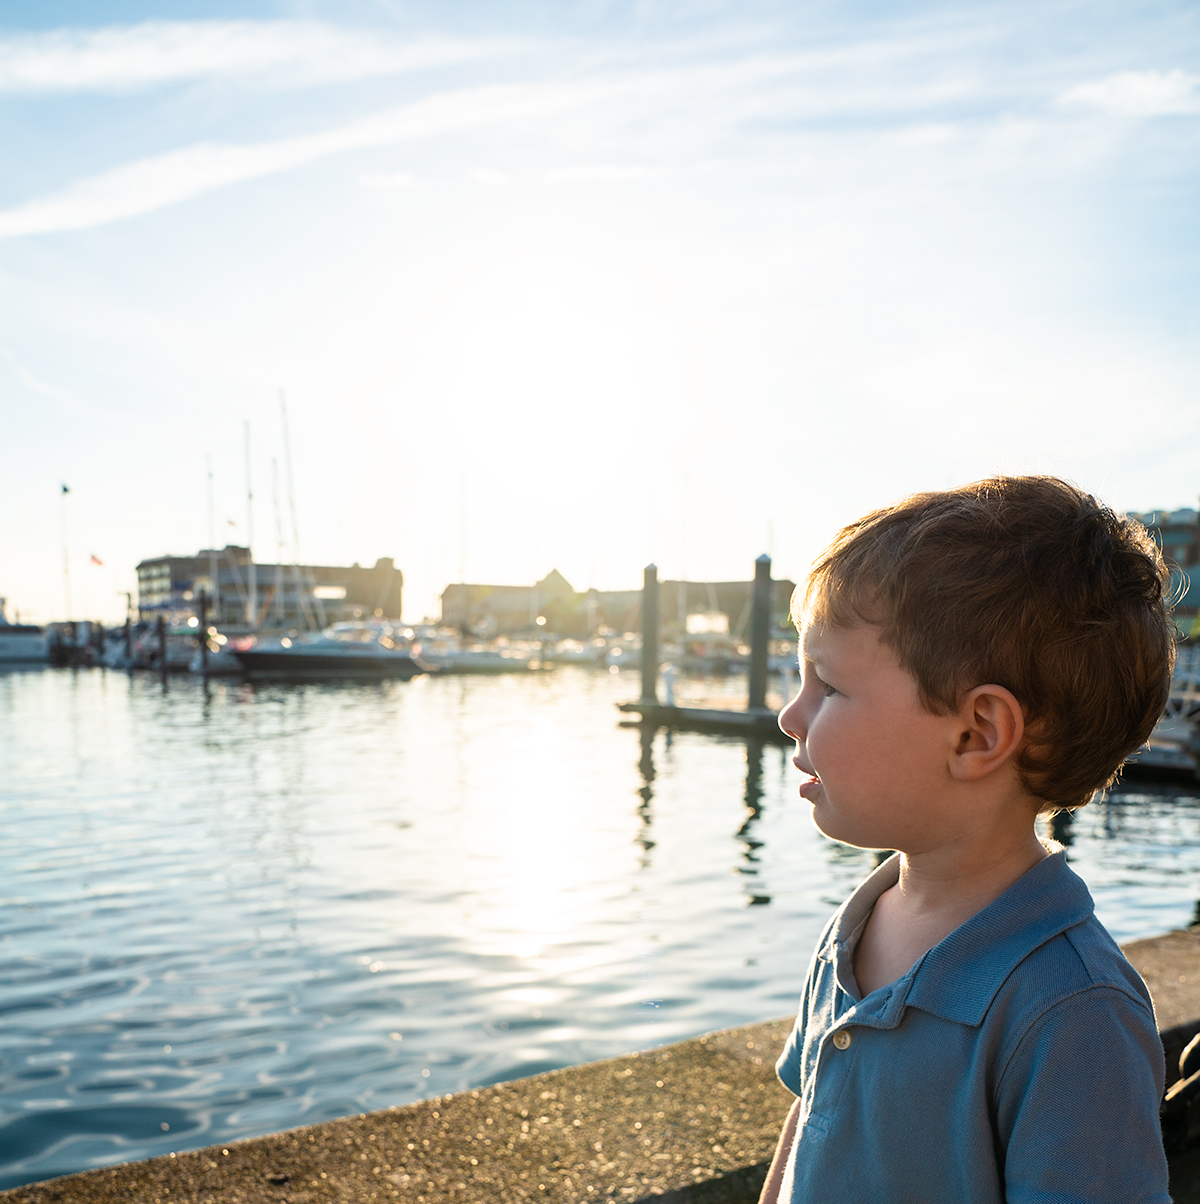 Trevor-looking-out-over-Newport-Harbor-RI